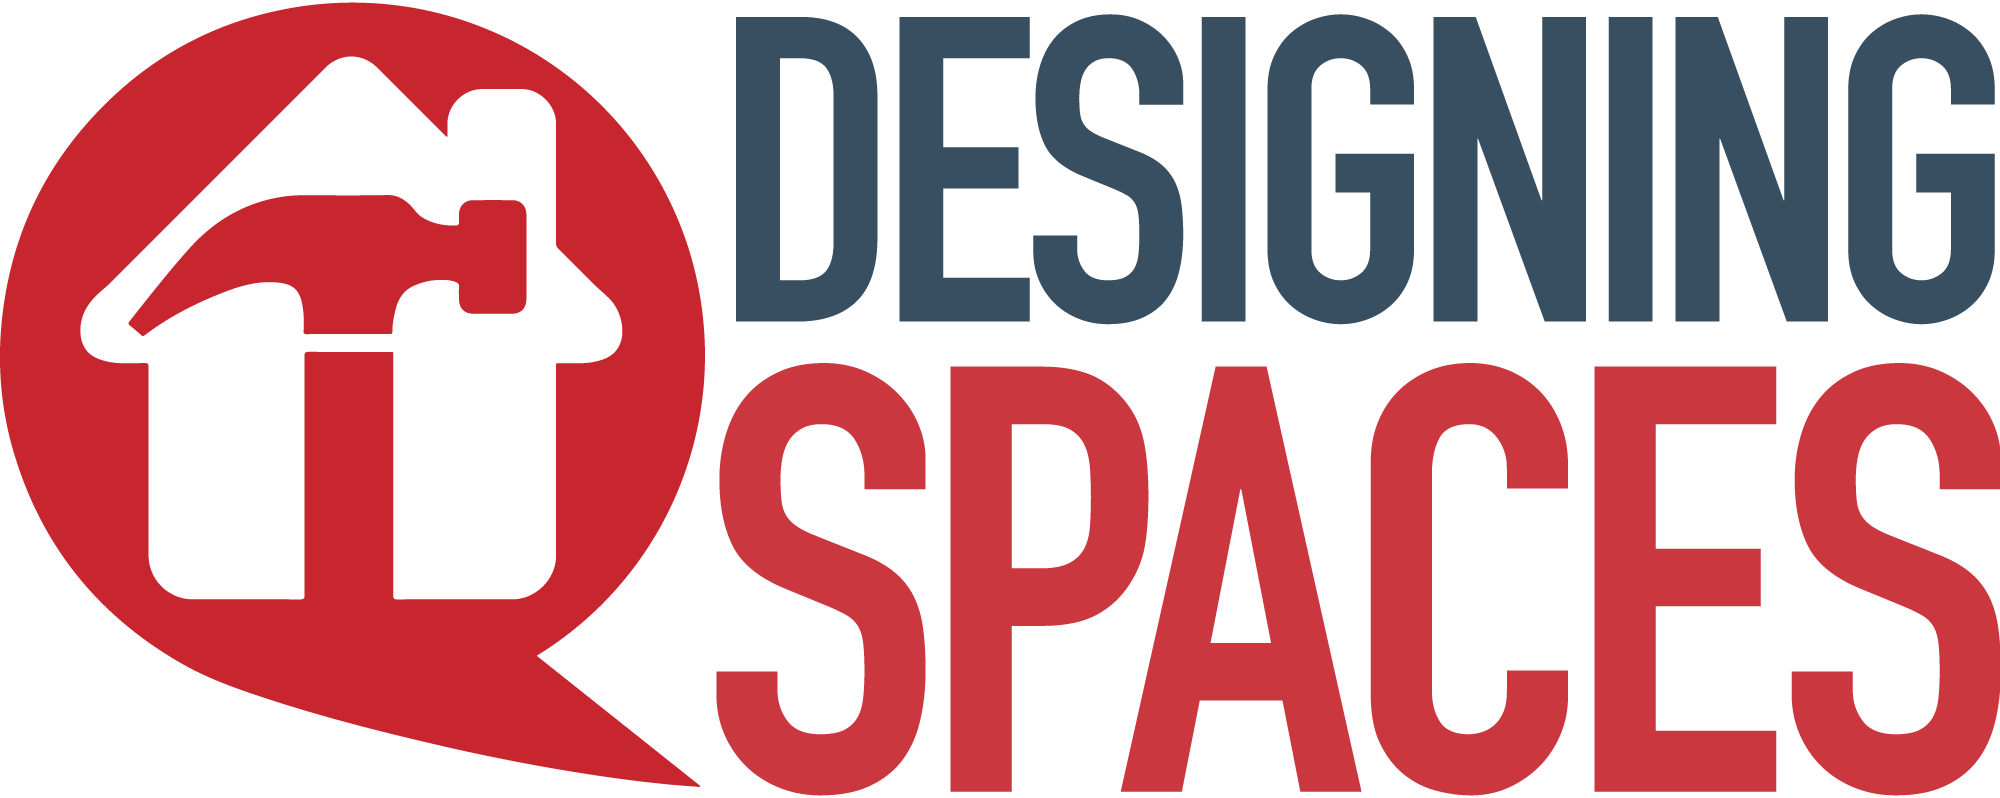 www.DesigningSpaces.tv